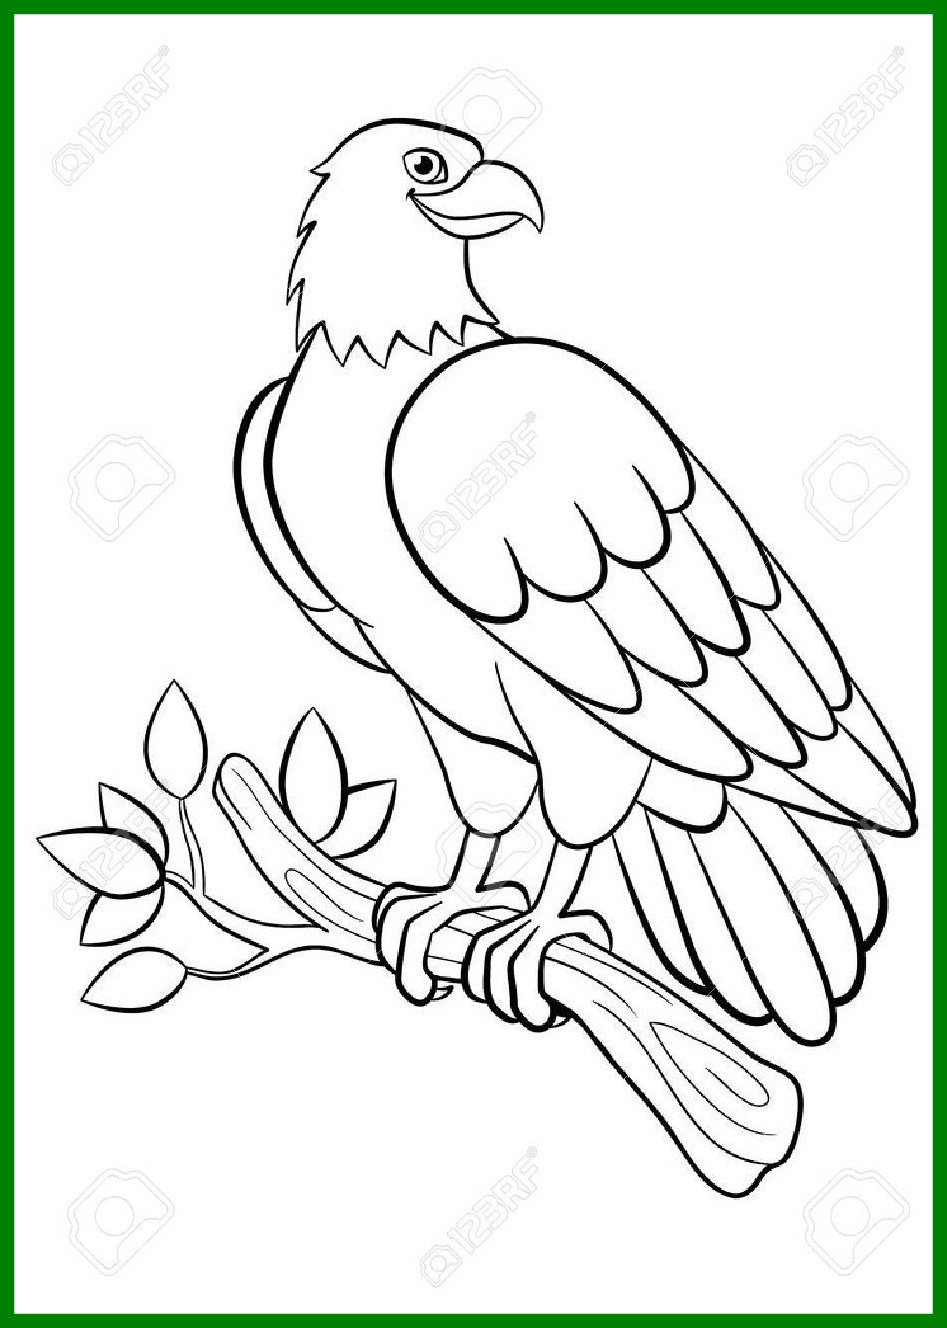 947x1328 Inspiring Coloring Pages Wild Birds Cute Smiling Eagle Sits